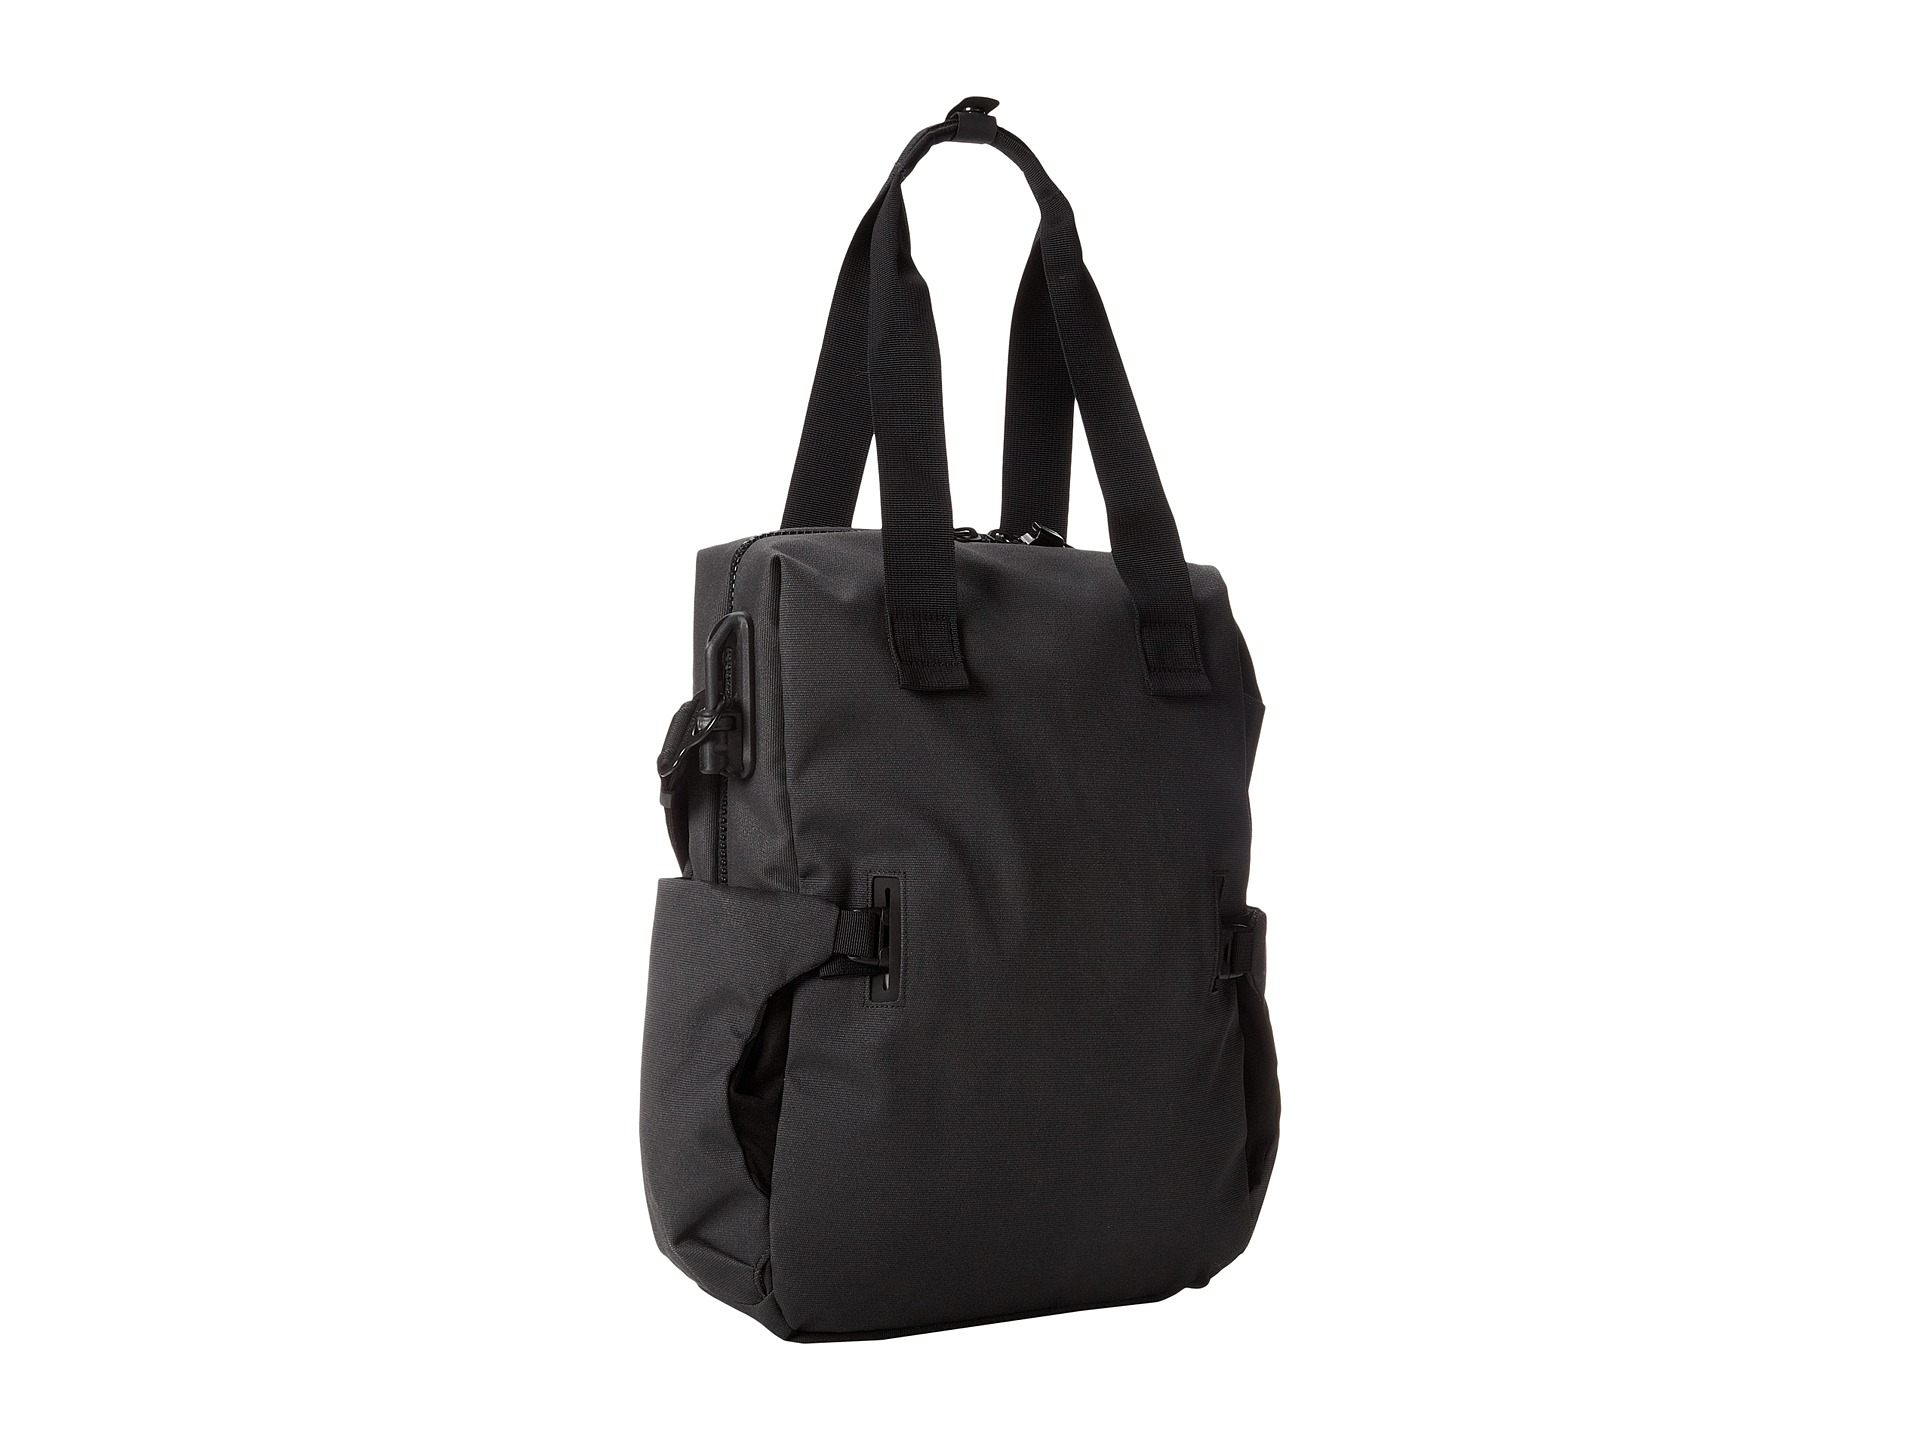 Pacsafe Intasafe Z300 Anti Theft Tote Bag